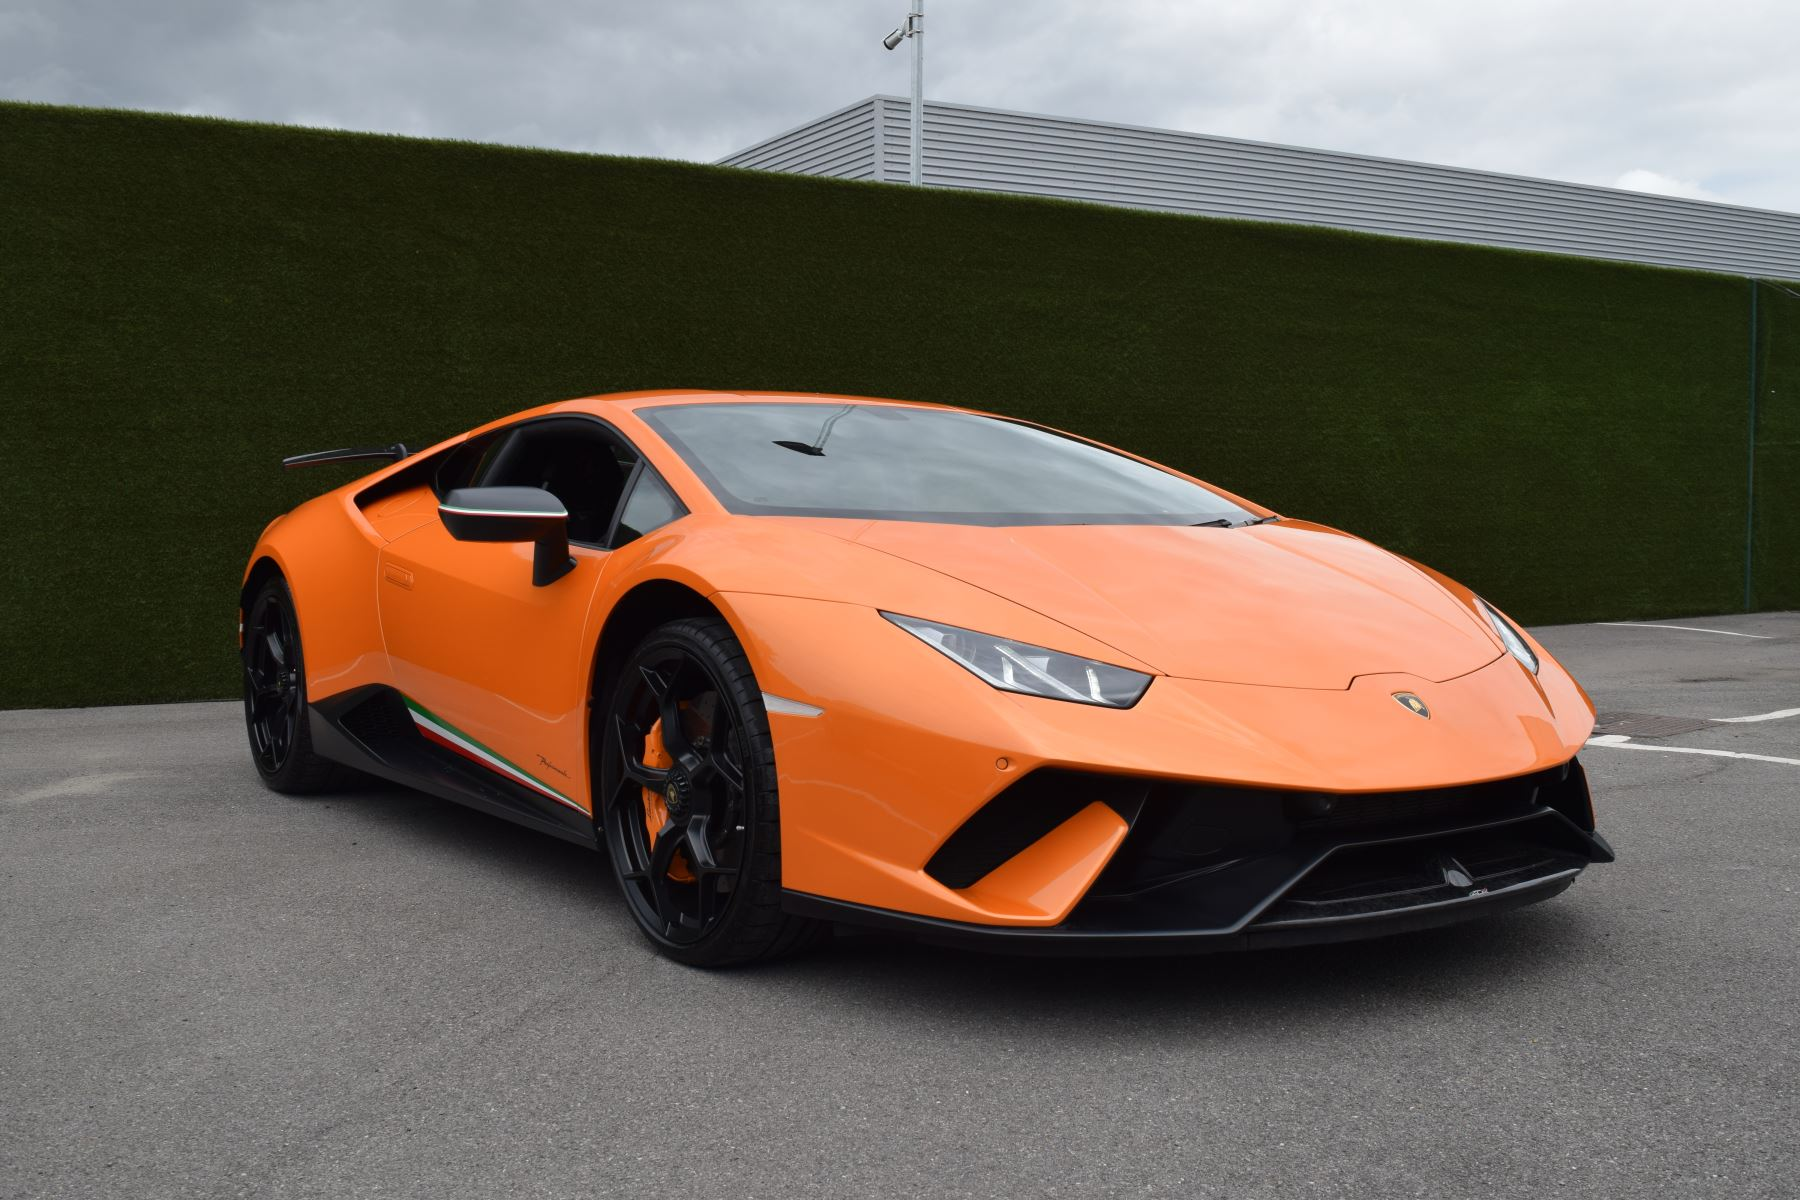 Lamborghini Huracan LP 640-4 Performante 2dr LDF 5.2 Semi-Automatic Coupe (2017)